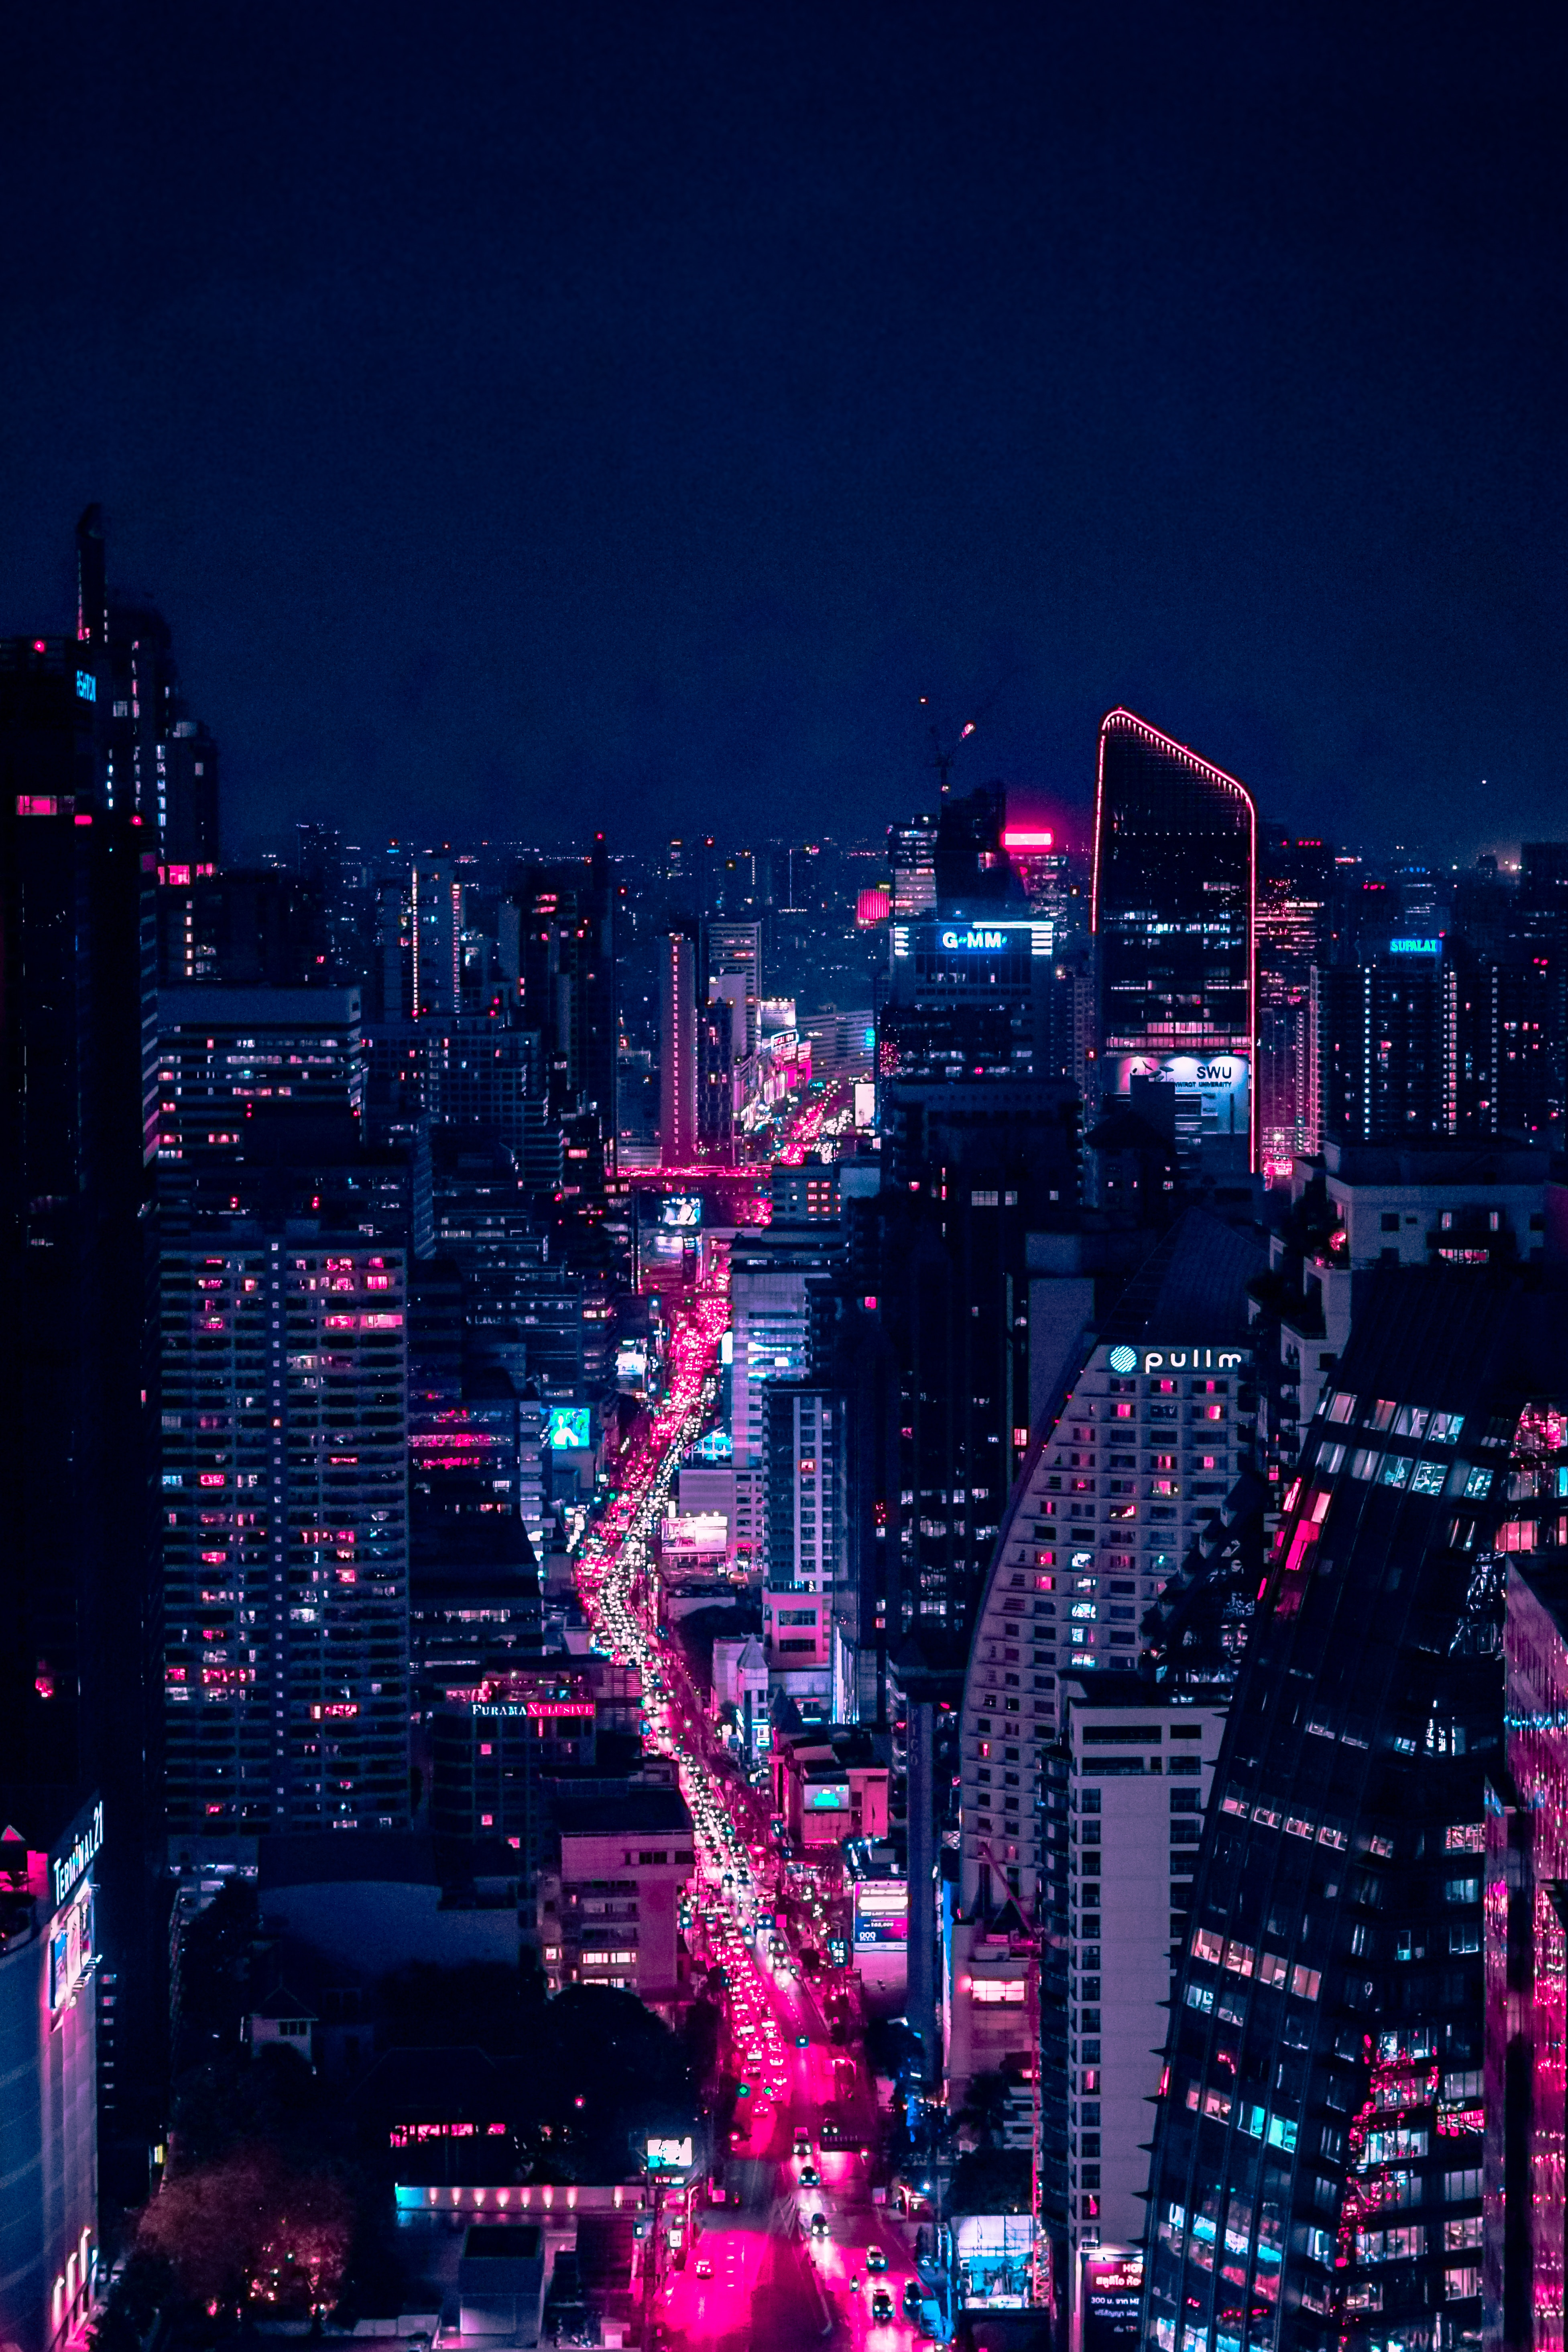 136320 download wallpaper Architecture, Cities, Night, Building, View From Above, Night City, City Lights screensavers and pictures for free